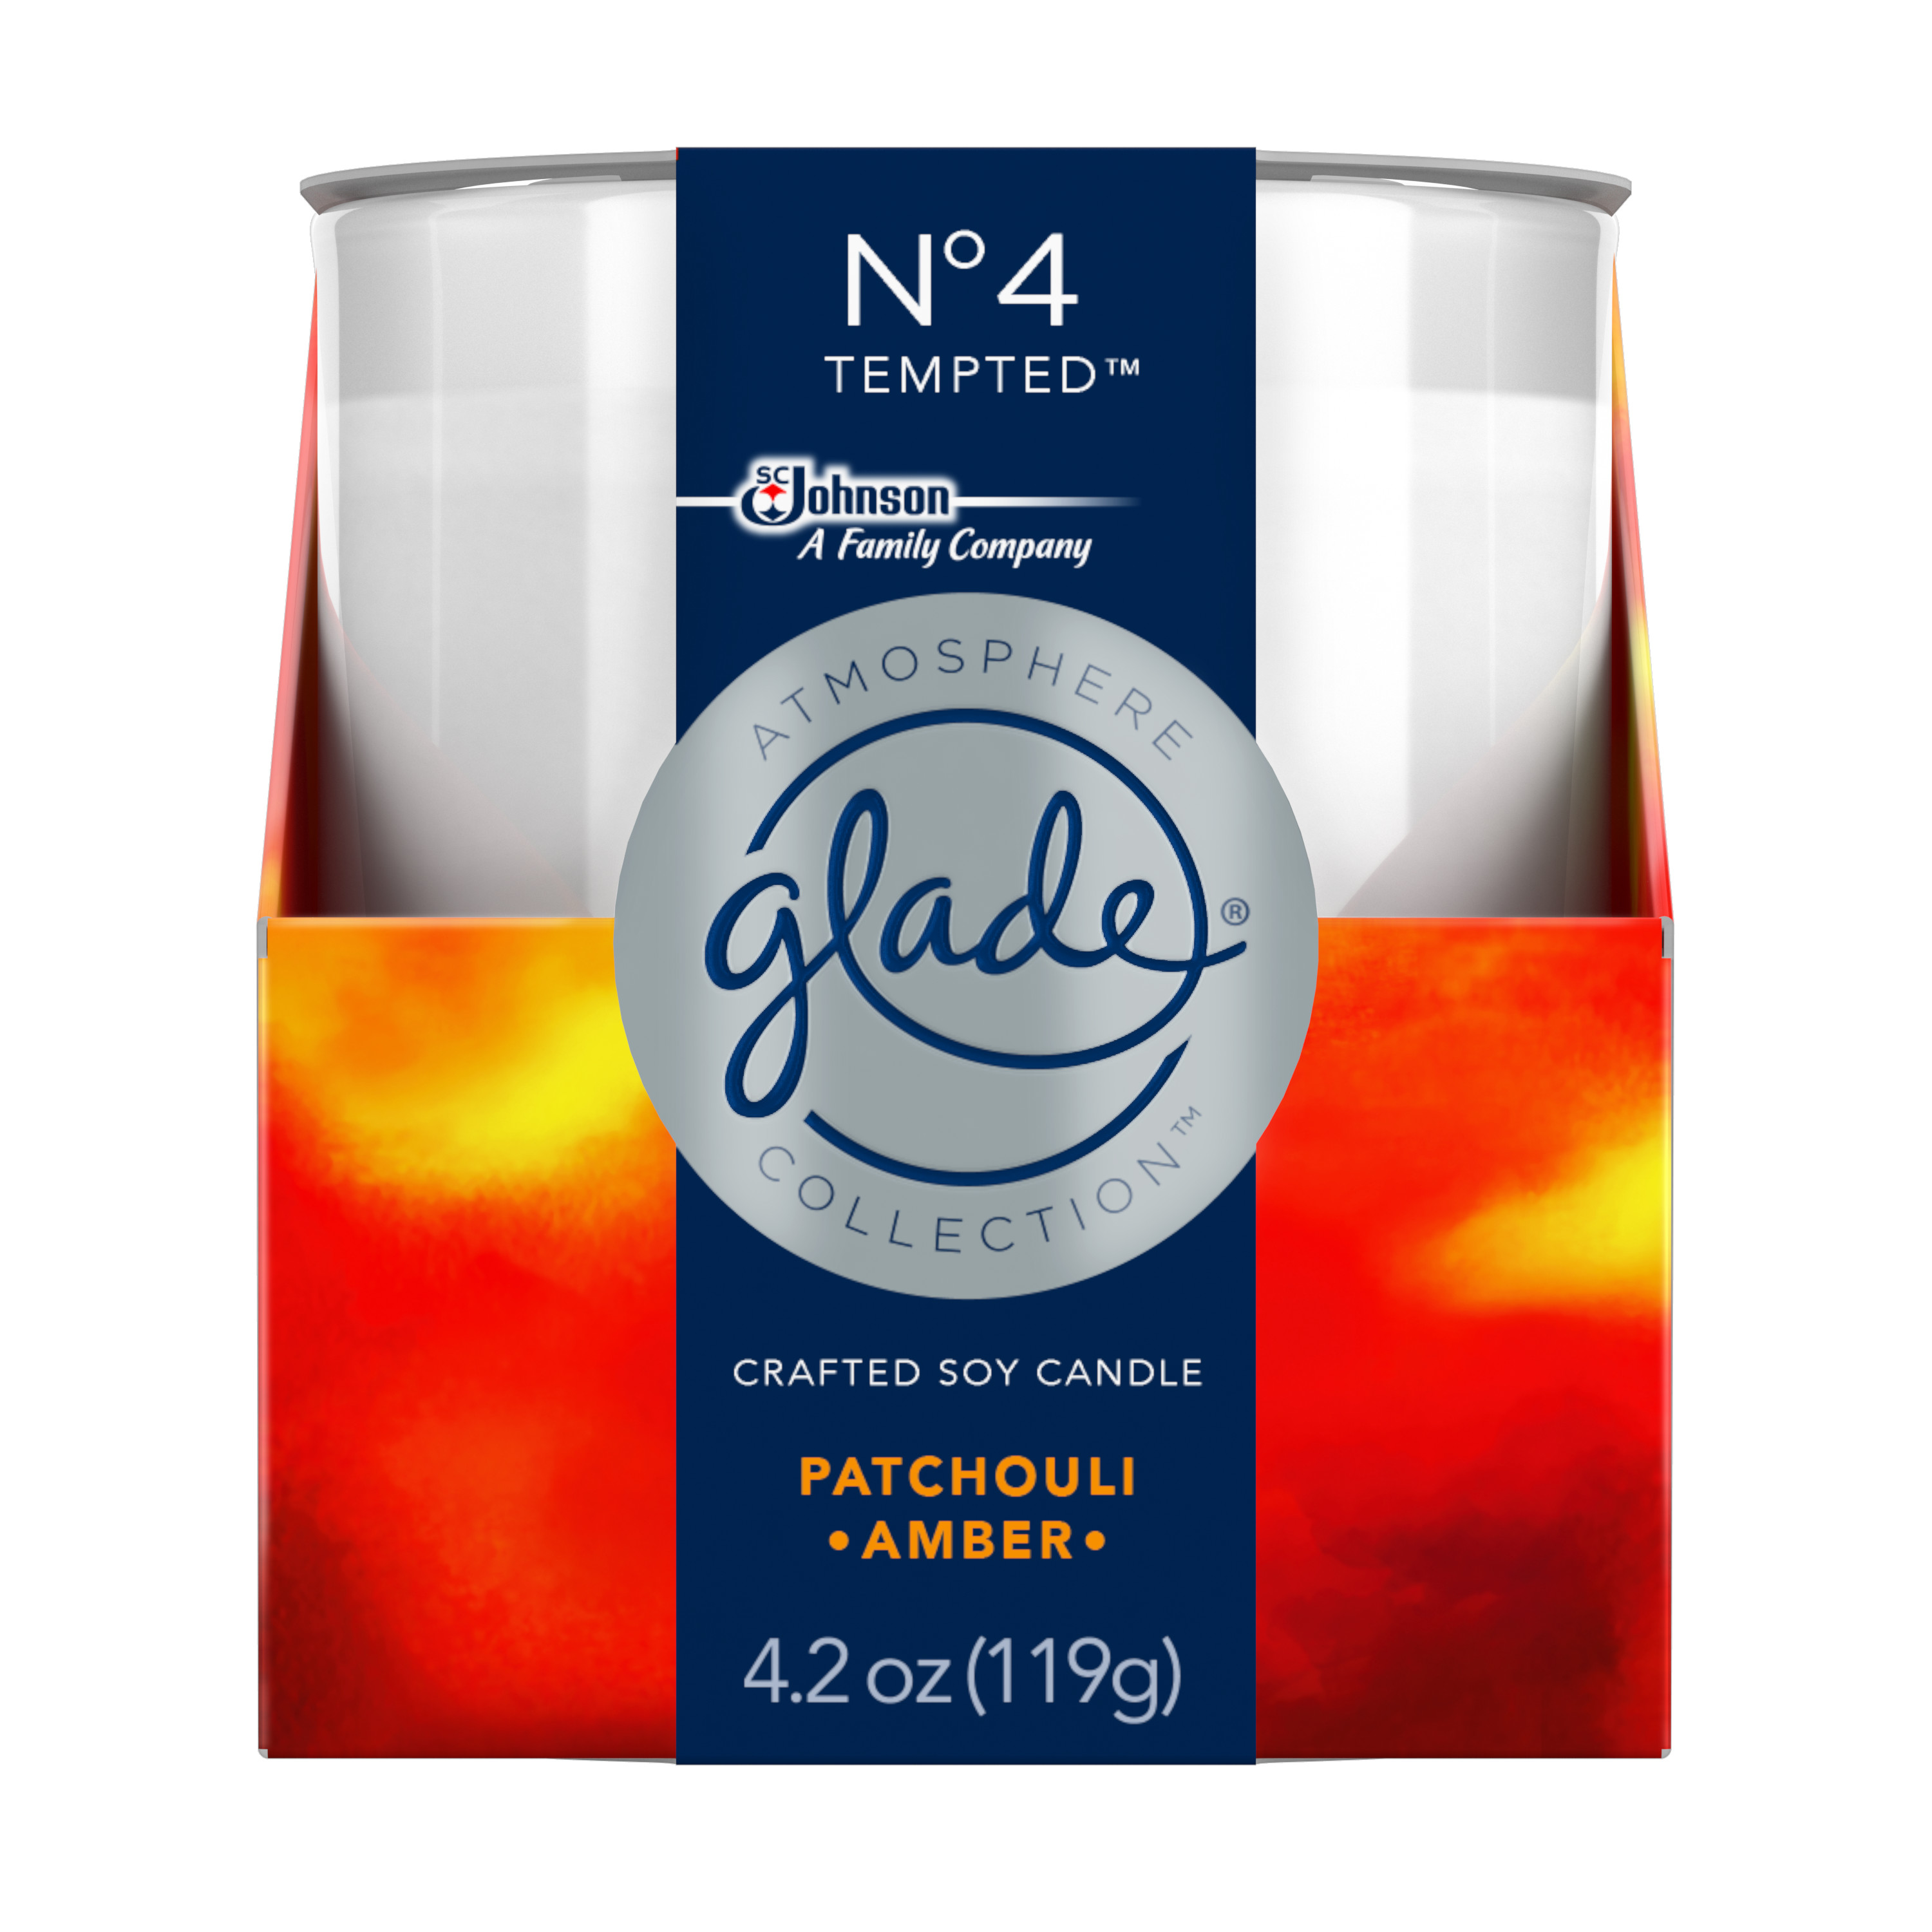 Glade Candle, Patchouli, 4.2 oz.